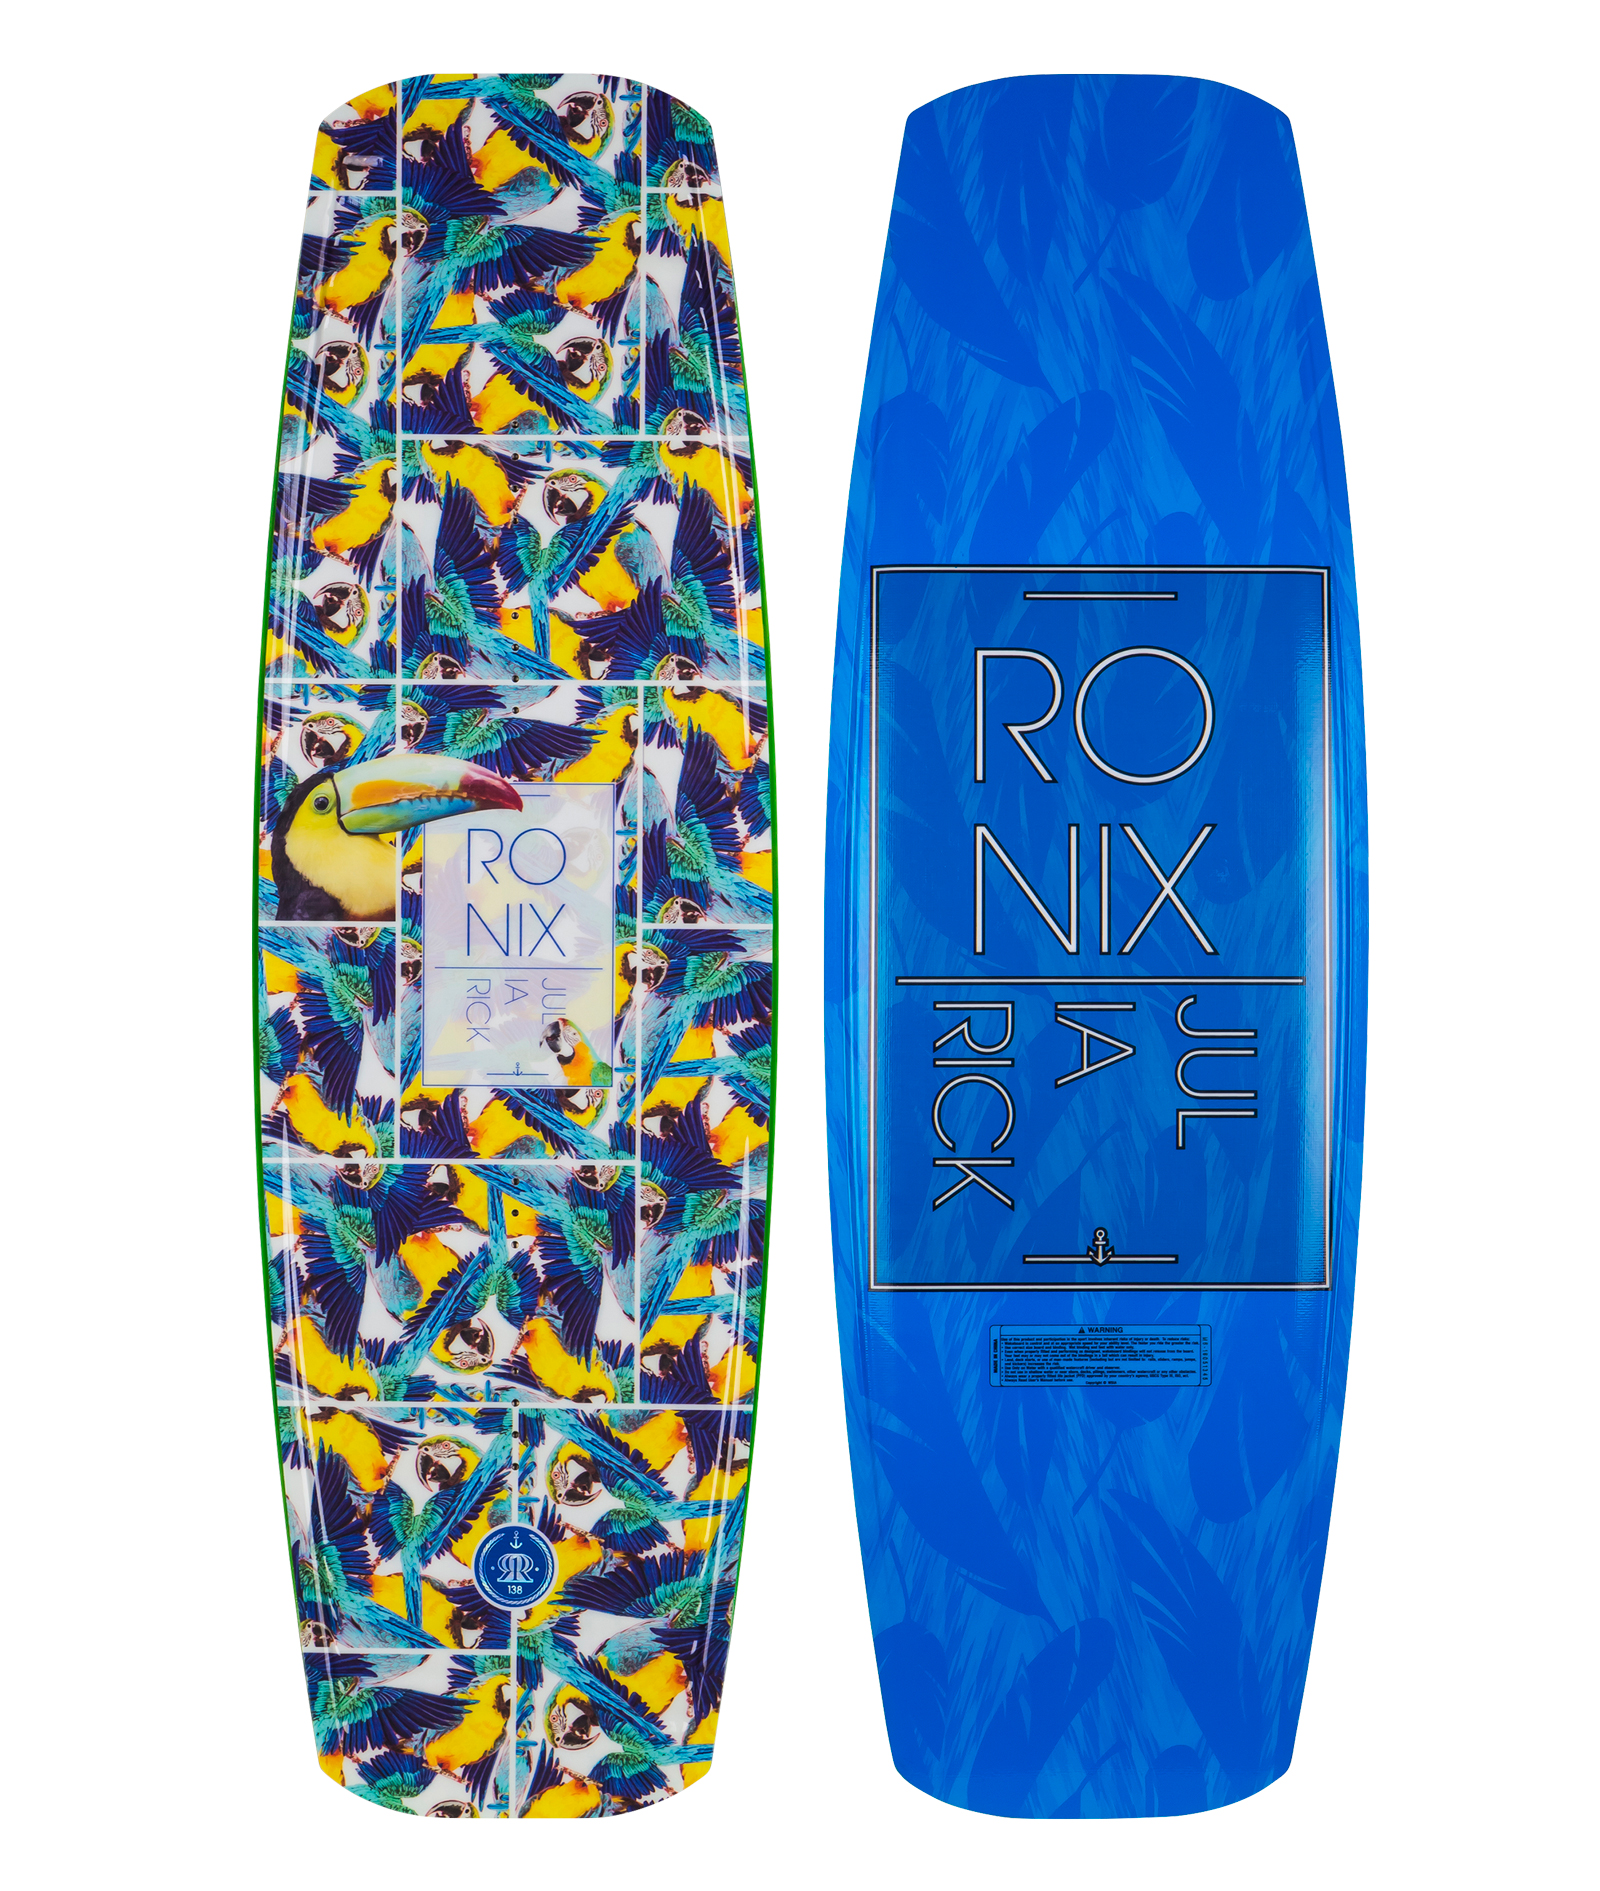 JULIA RICK FLEX BOX 2 138 WAKEBOARD RONIX 2017